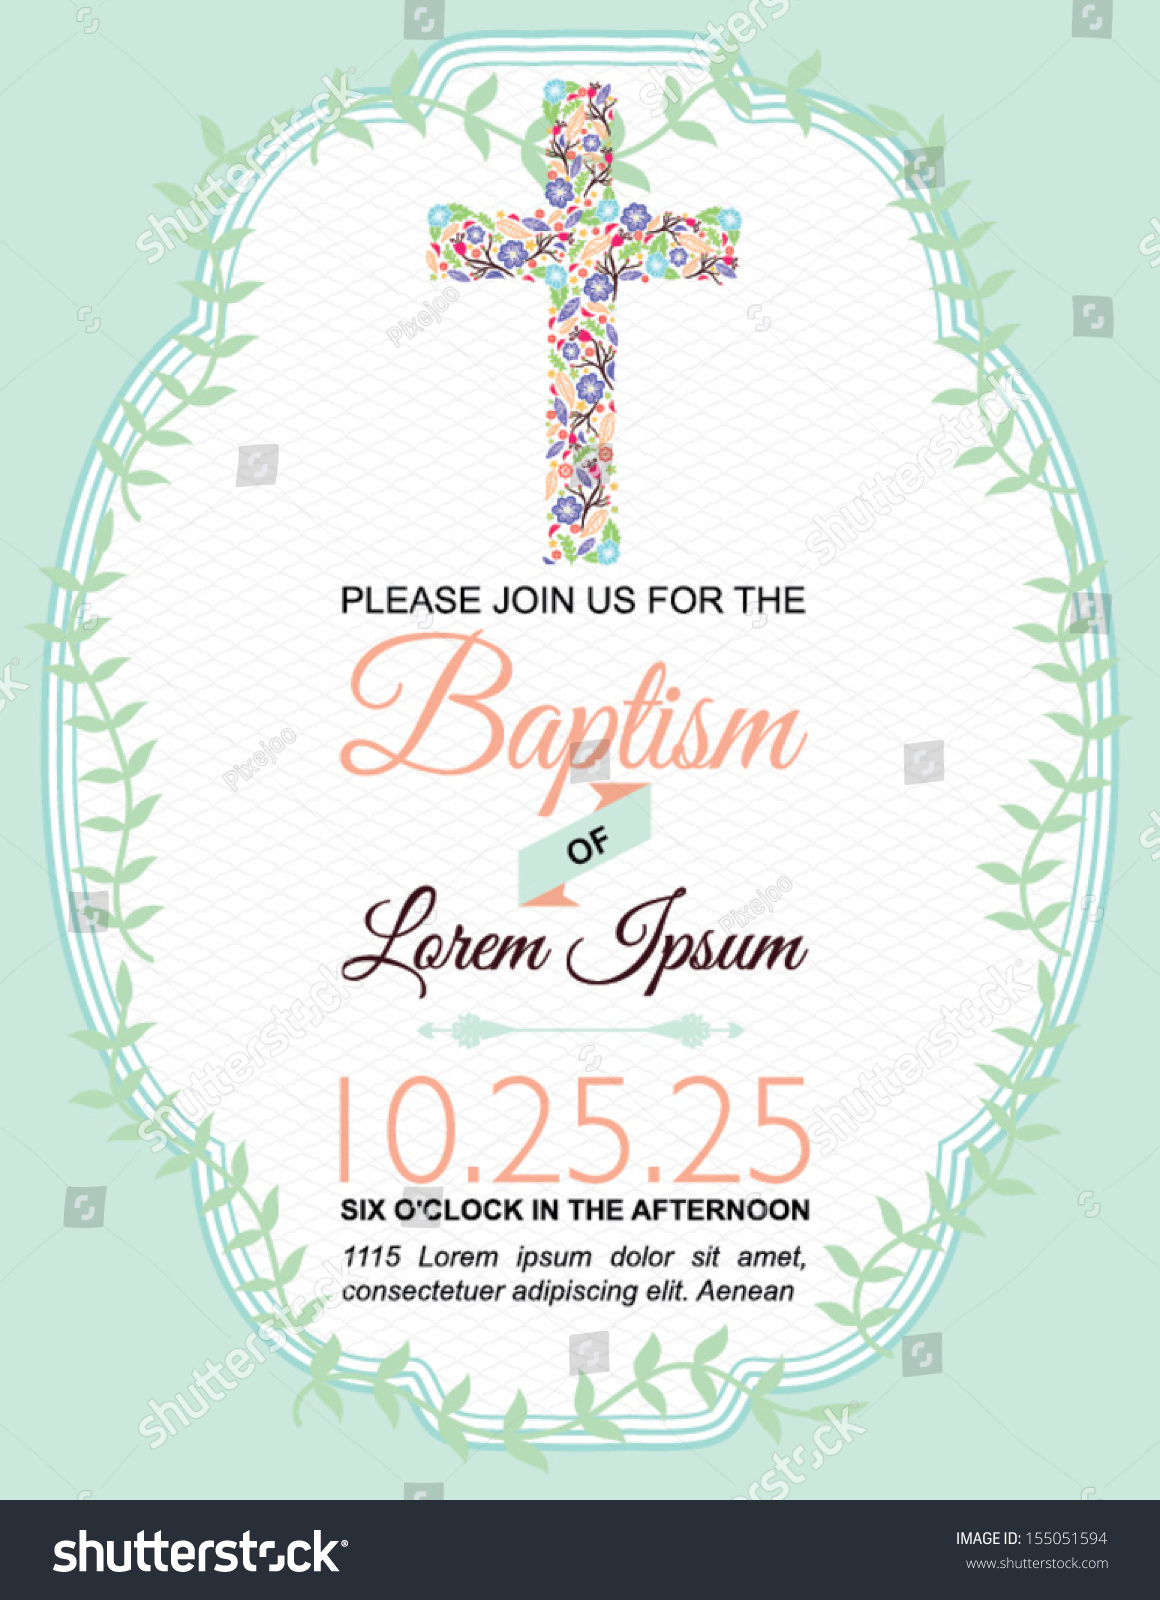 Design For Invitation Card For Christening